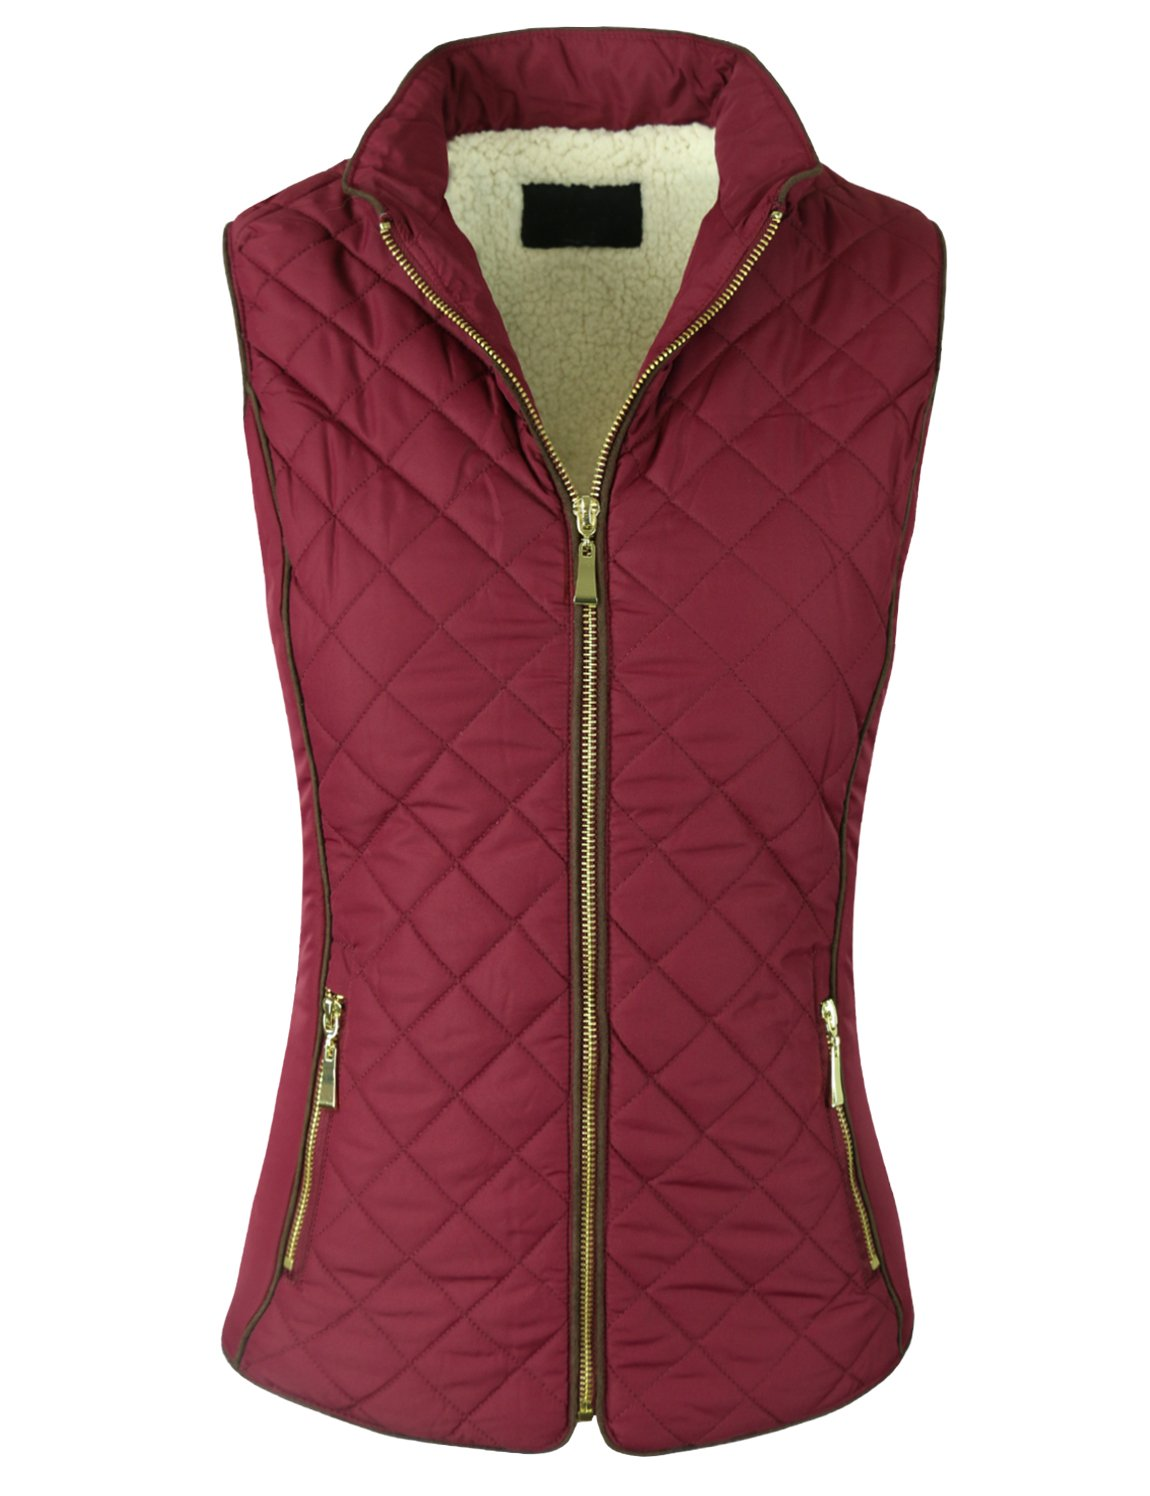 makeitmint Women's Basic Solid Quilted Padding Jacket Vest w/ Pockets Small YJV0002_24BURGUNDY